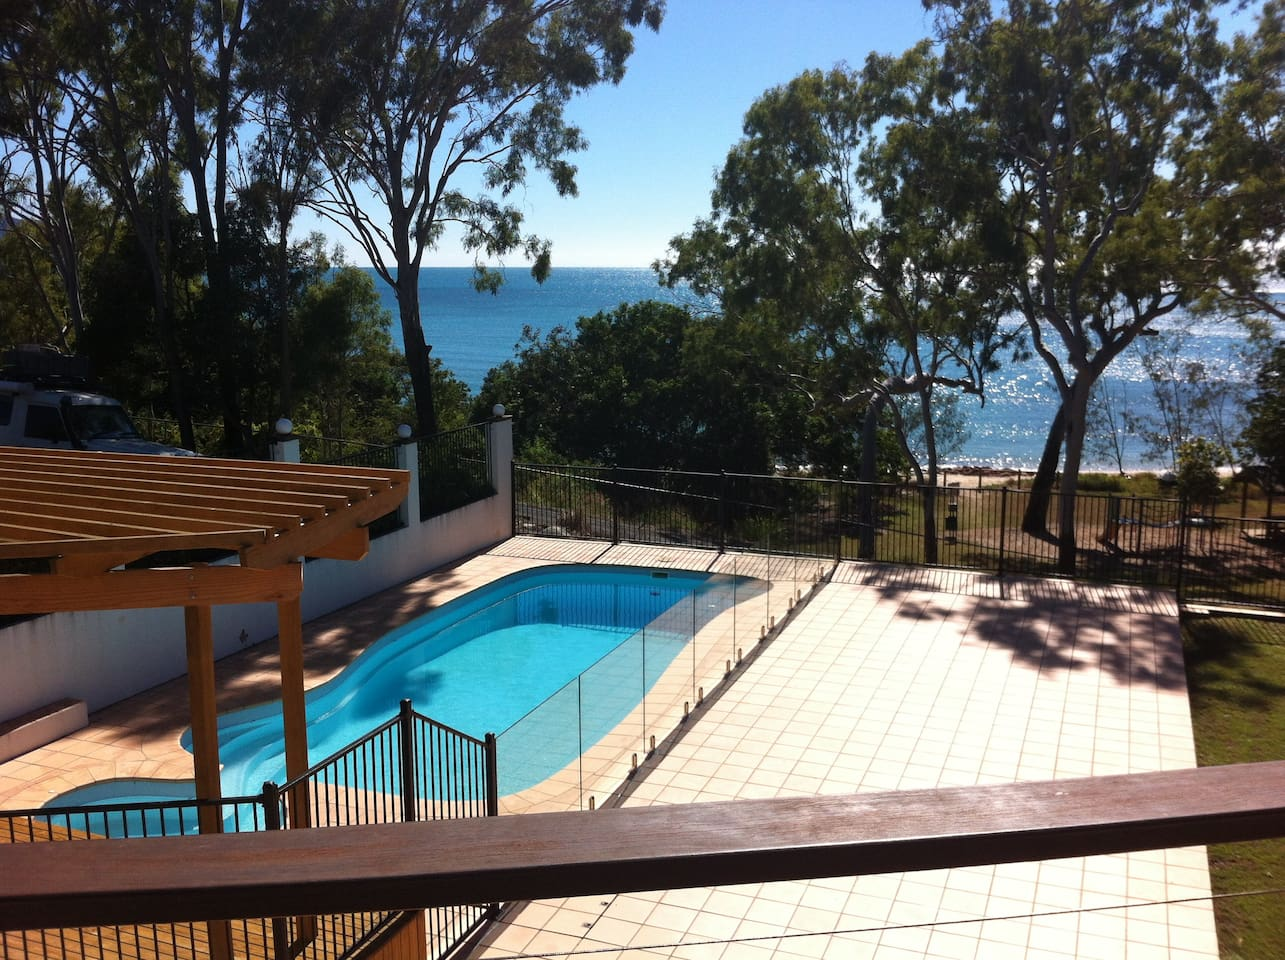 Large enclosed pool with raised deck. Tiled and grassed yard area